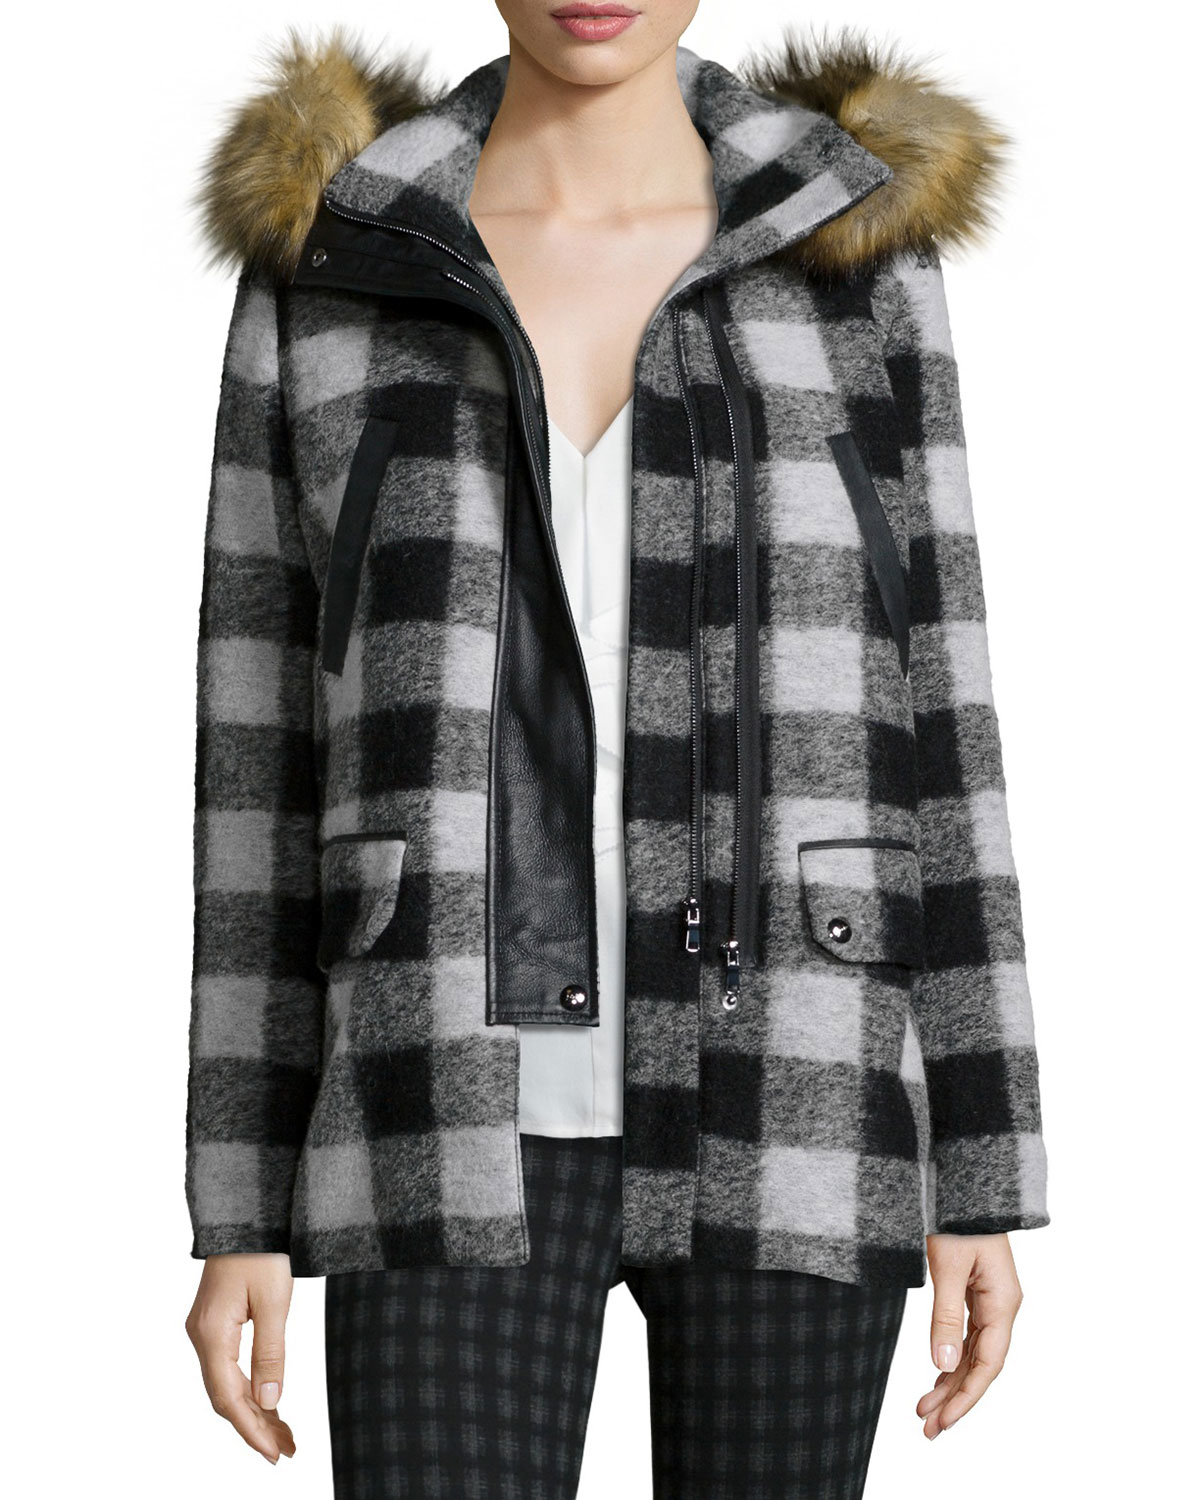 Stradivarius parka jacket with fur hood. £ Noisy May Tall faux fur padded parka. £ Vero Moda Tall Faux Fur Hooded Padded Jacket. £ Story Of Lola Oversized Zip Front Hooded Jacket In Faux Fur. £ Mamalicious quilted coat with post birth functionality. £